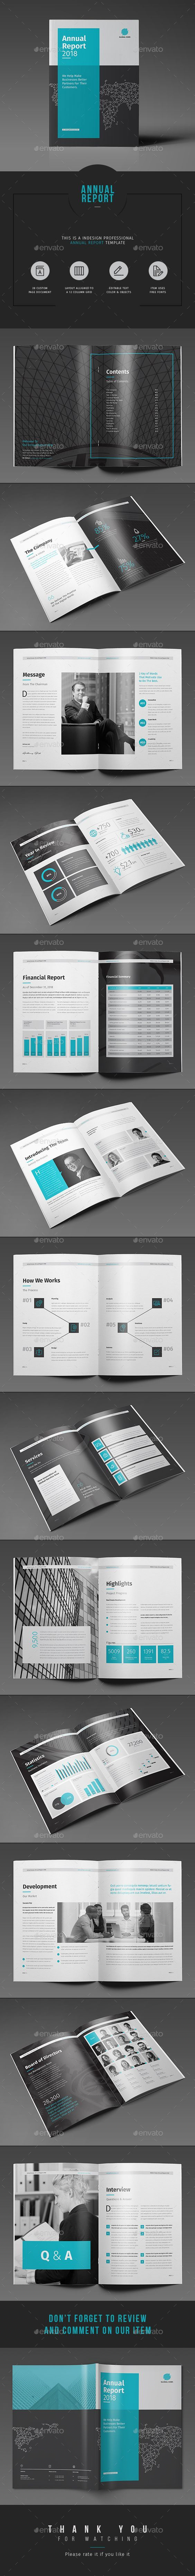 Annual Report Template InDesign INDD. Download here: https://graphicriver.net/item/annual-report/17420066?ref=ksioks: